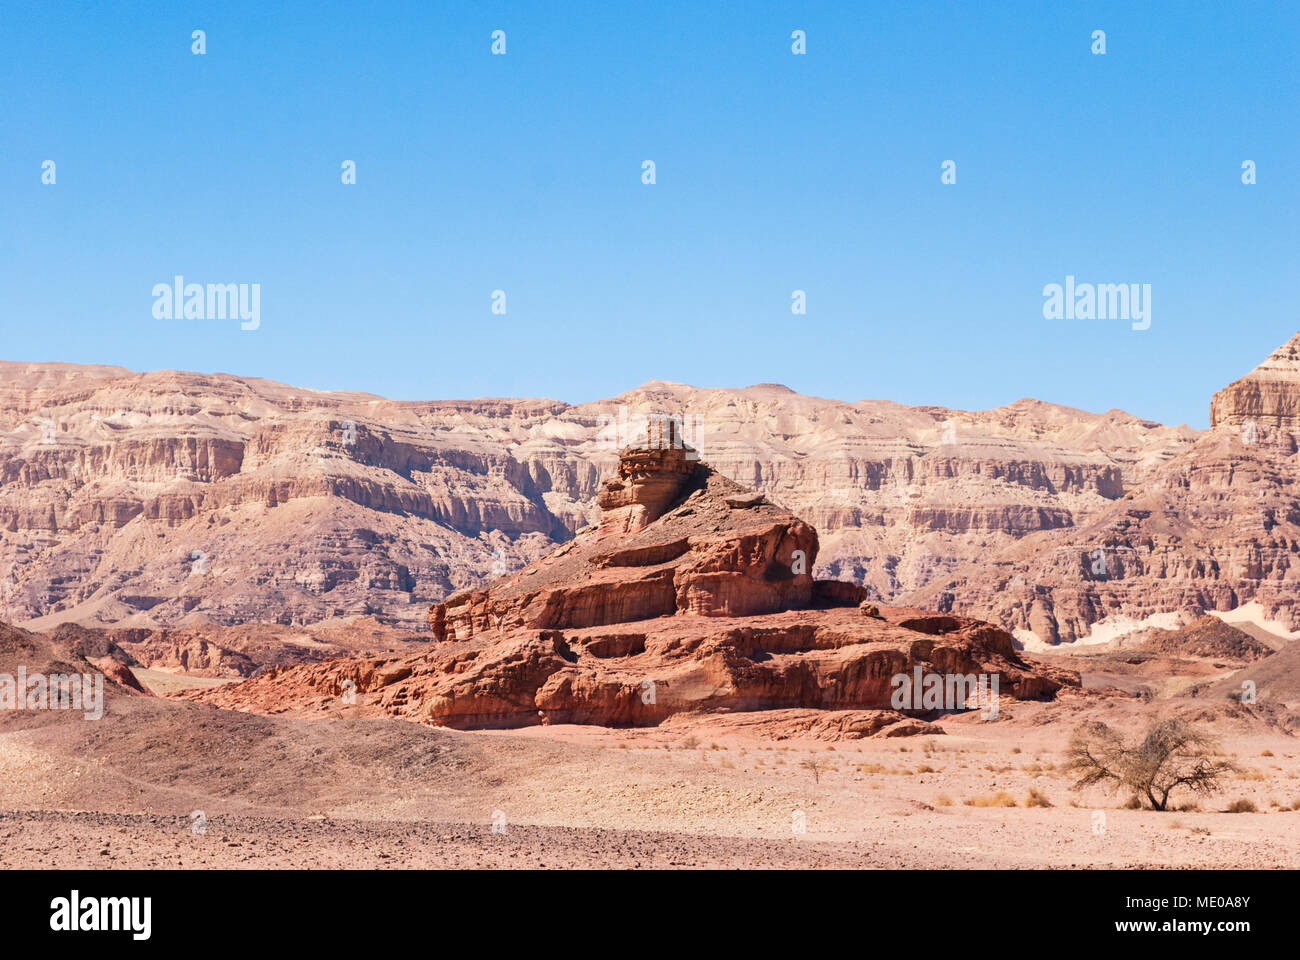 the spiral hill is one of many unique sandstone landforms at Timna Park in southern Israel - Stock Image